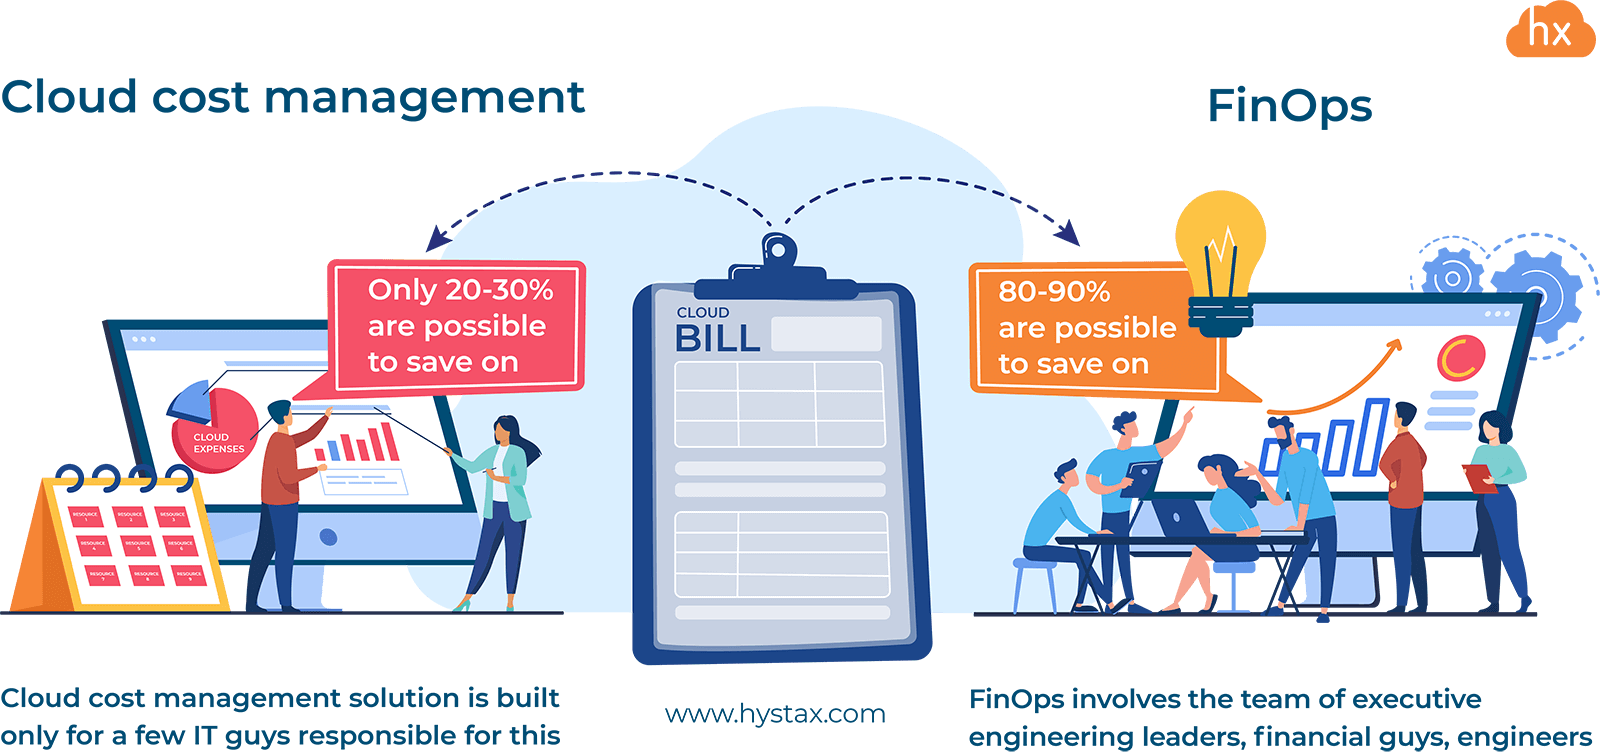 Cloud cost management and FinOps